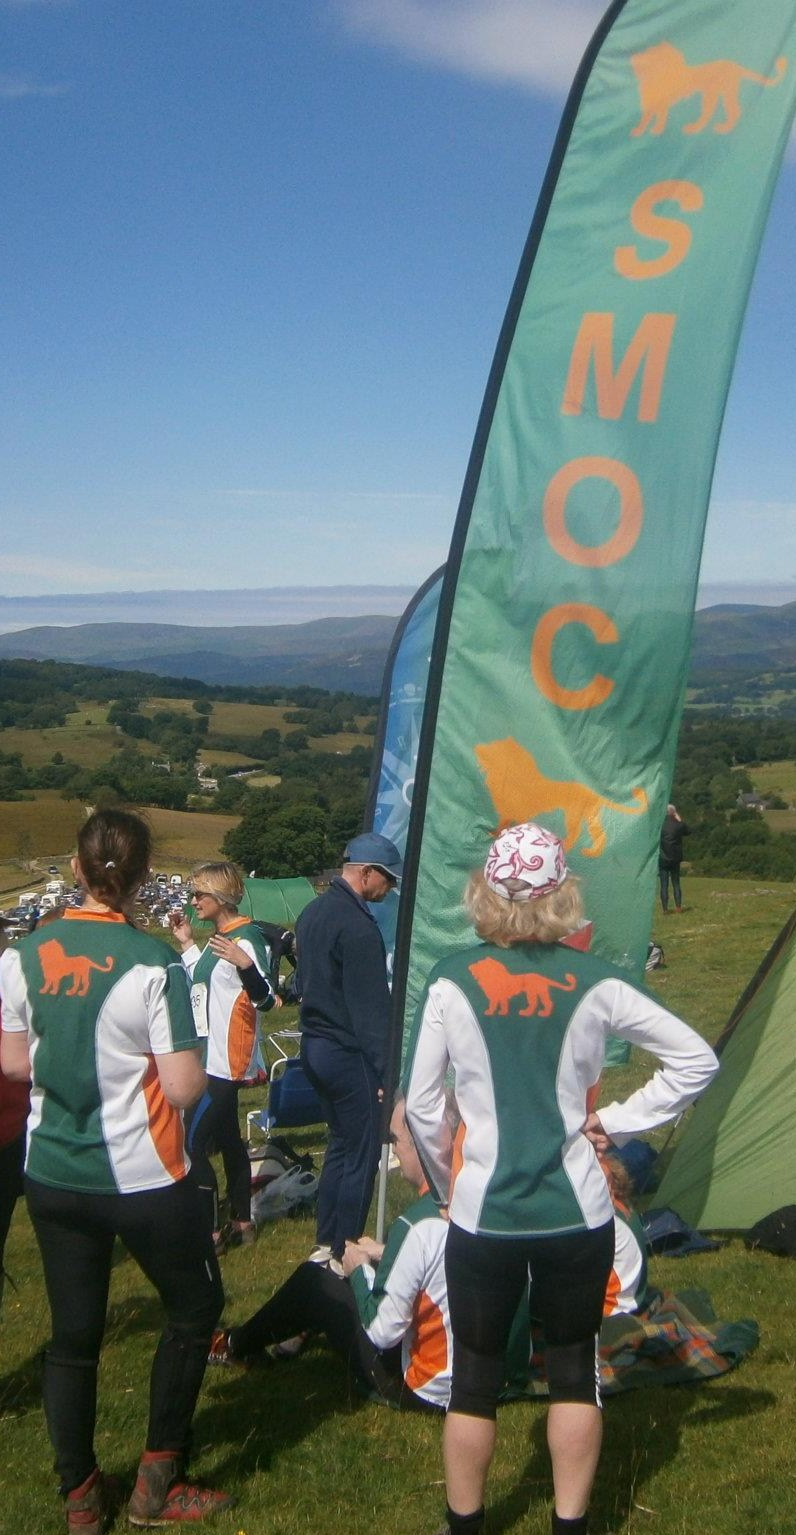 SMOC at the Welsh 5 Day.